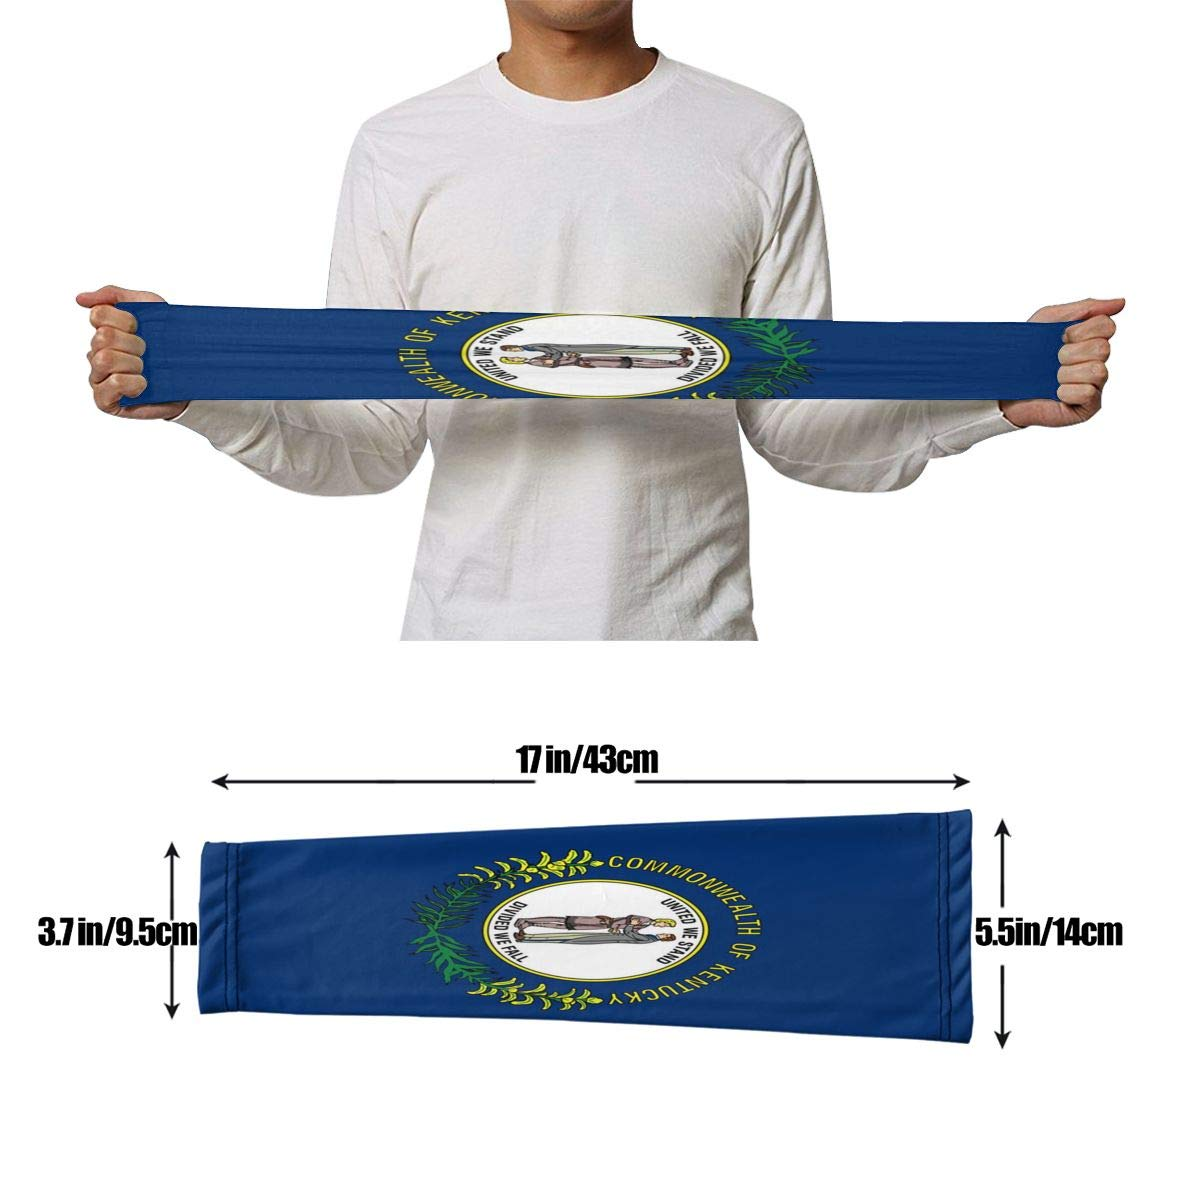 NKZSUX Men/&Women Arm Sleeves Kentucky State Flag Cooling Arm Sleeves Patterned Skin Cooler Protective